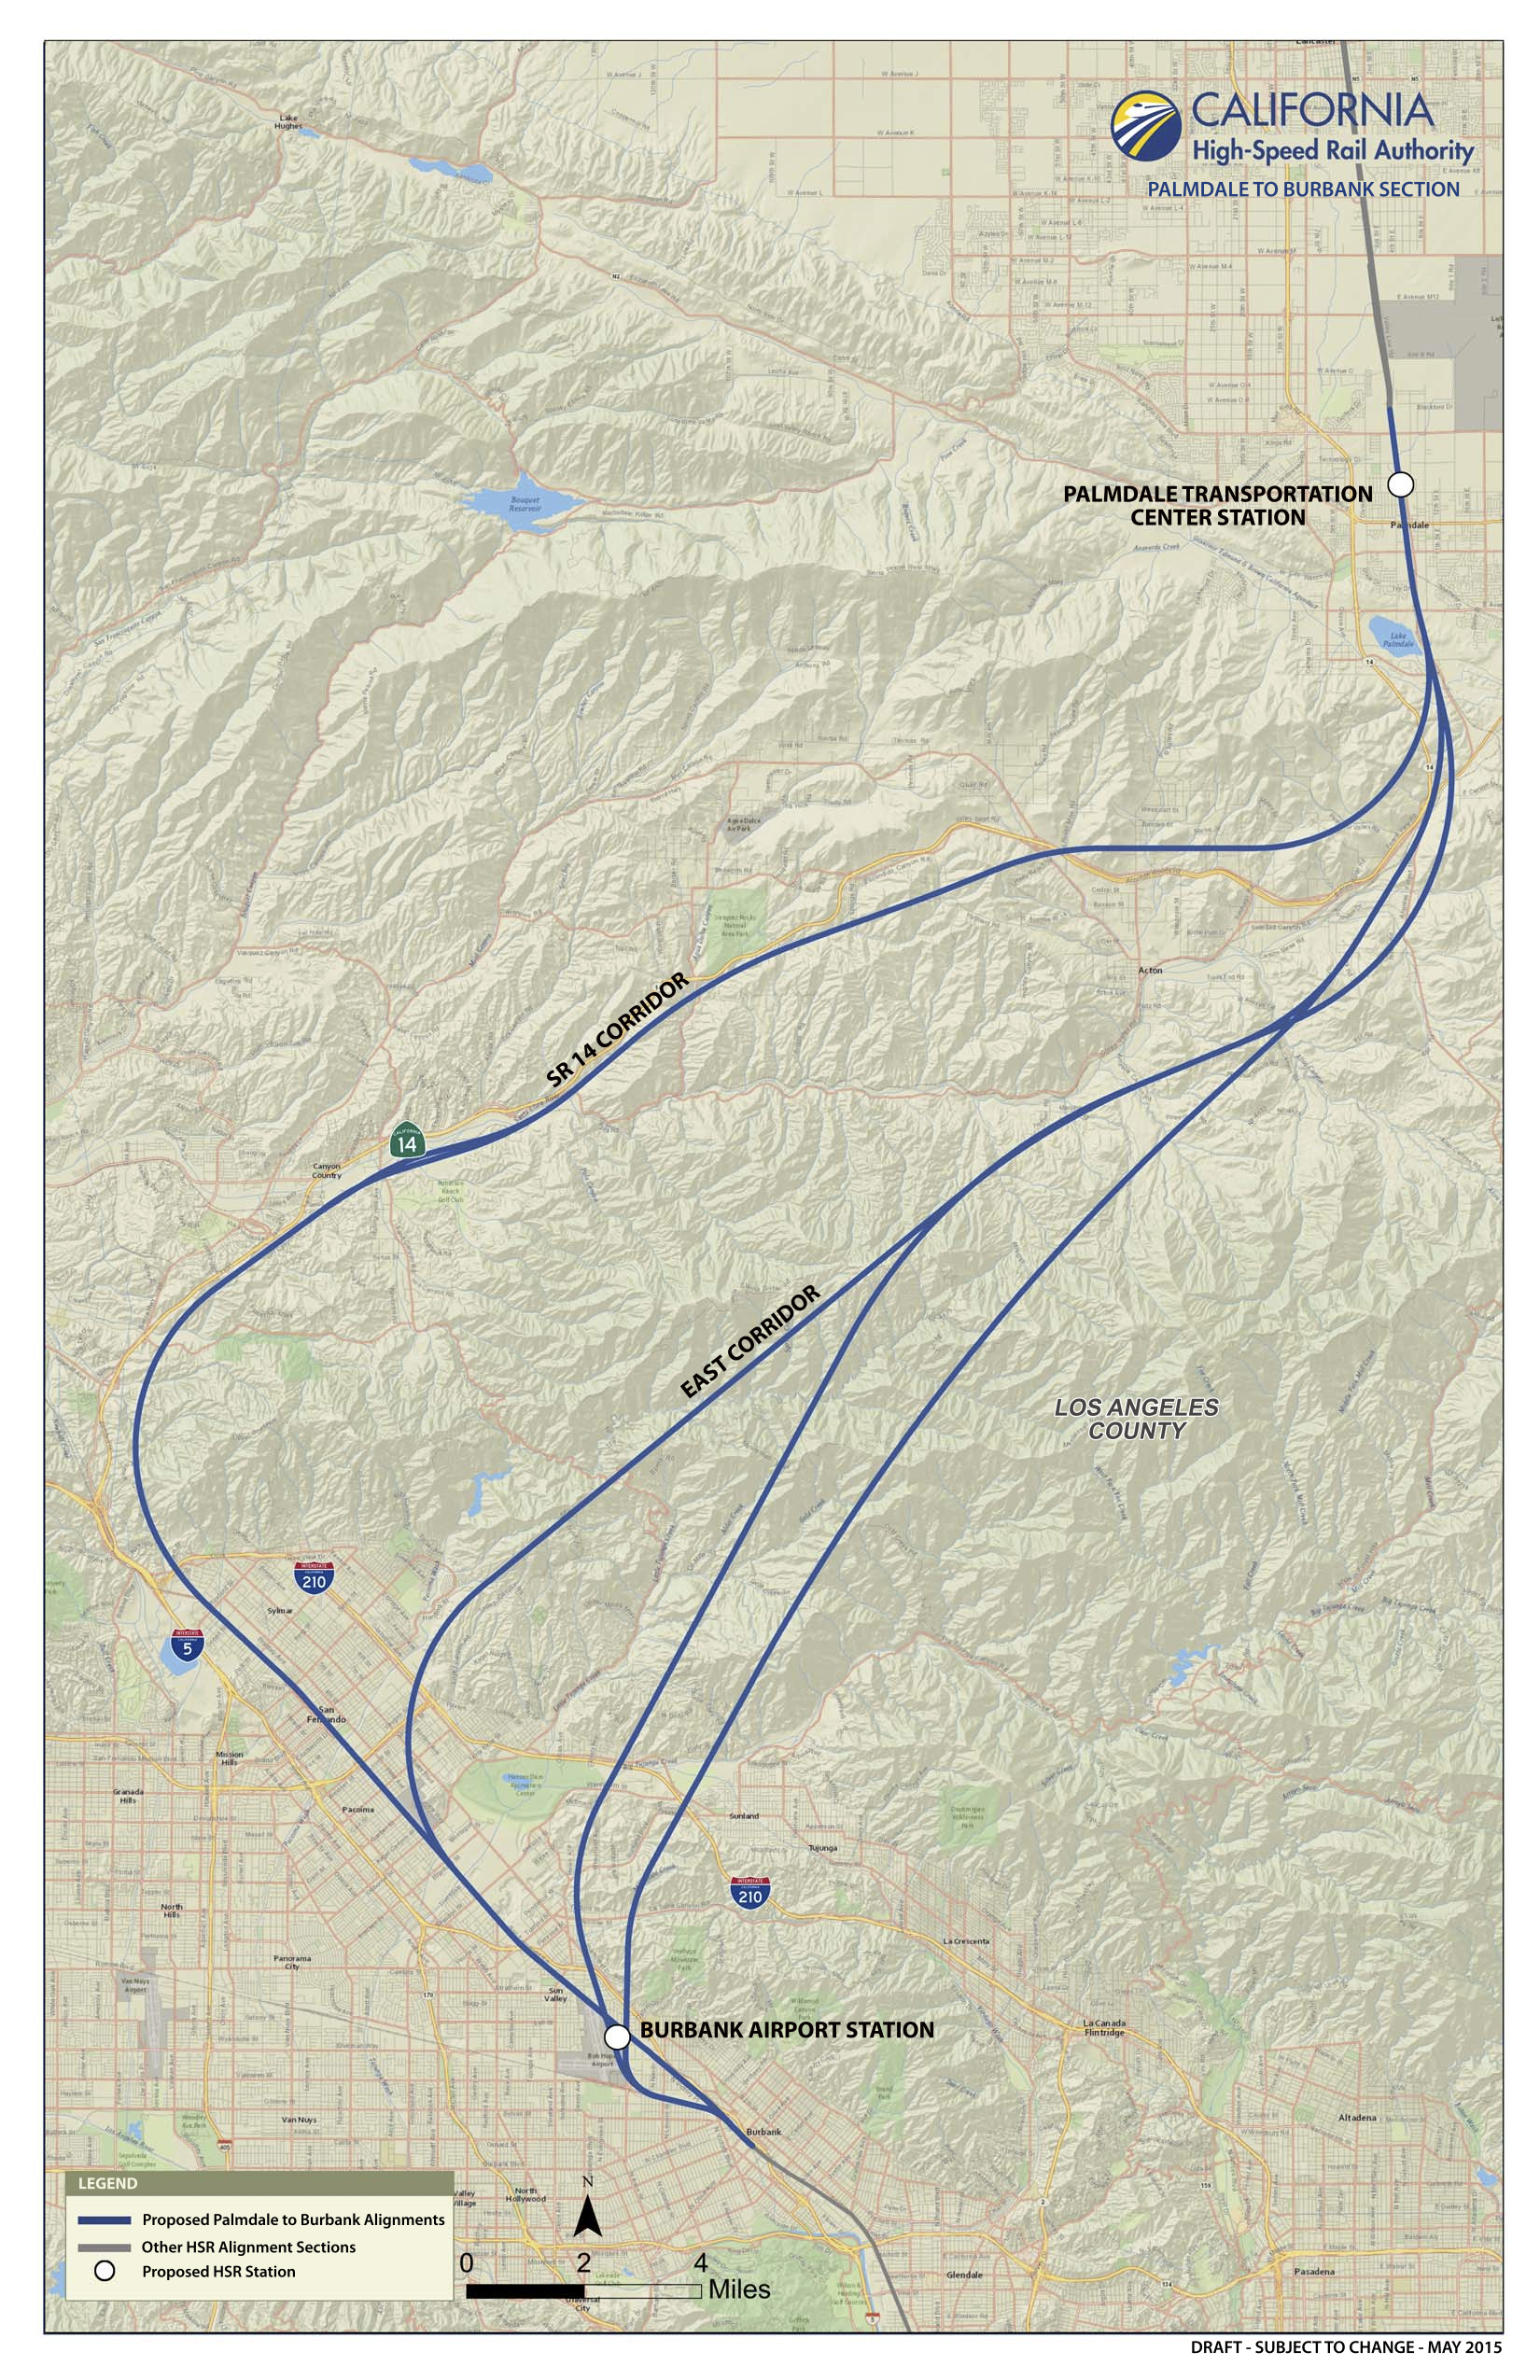 Routes being studied for the Palmdale to Burbank section of the bullet train's route. Credit: California High-Speed Rail Authority.